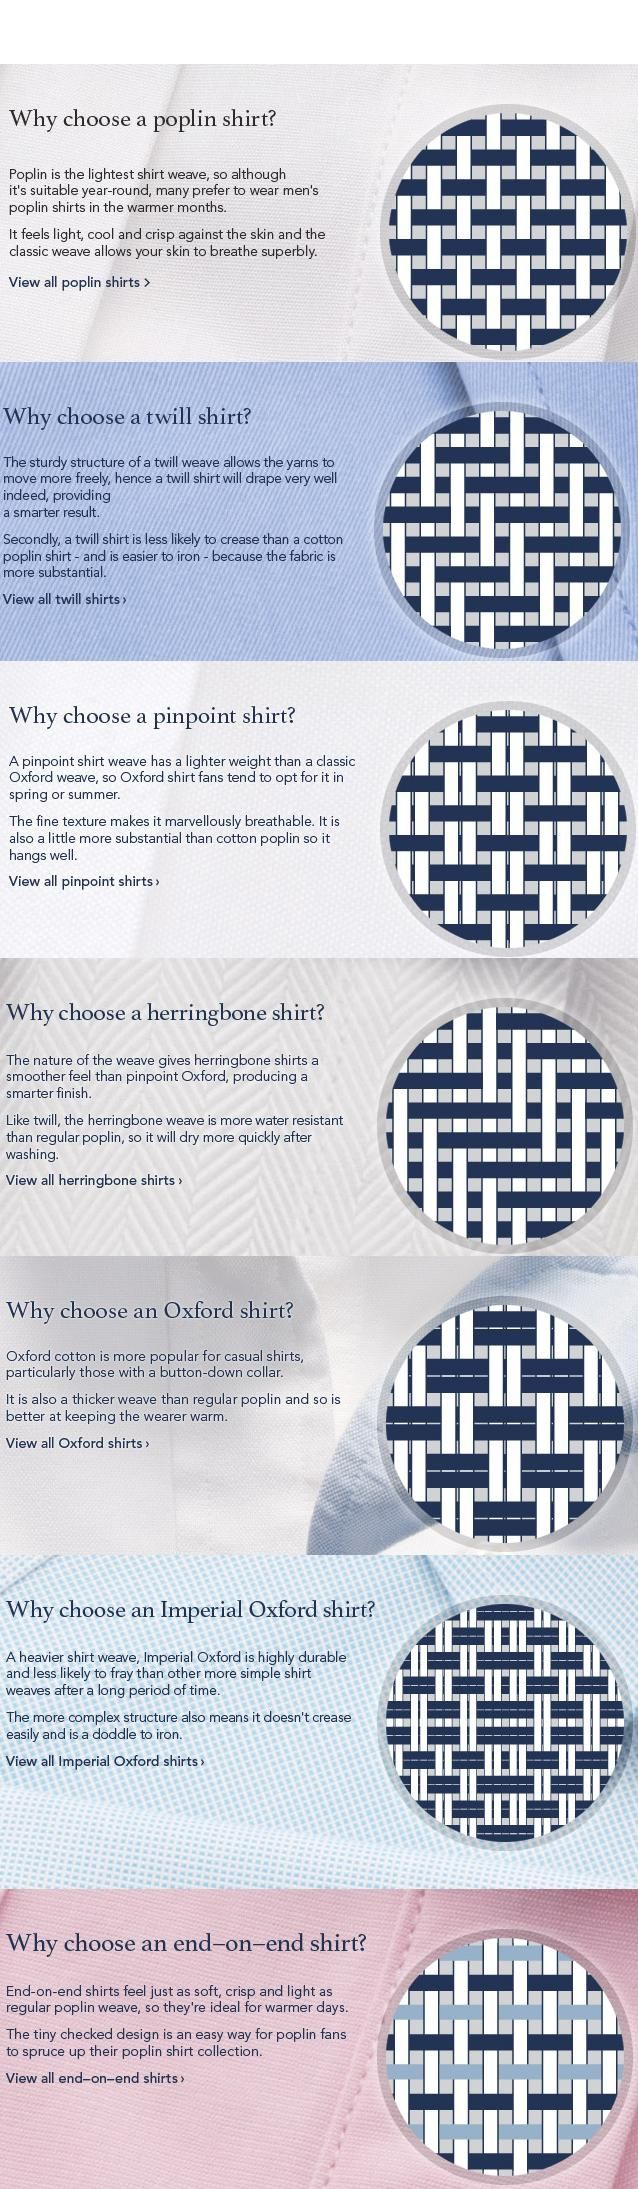 Weaving patterns of shirting fabrics. The weave of the fabric can influence the style or drape of garment.